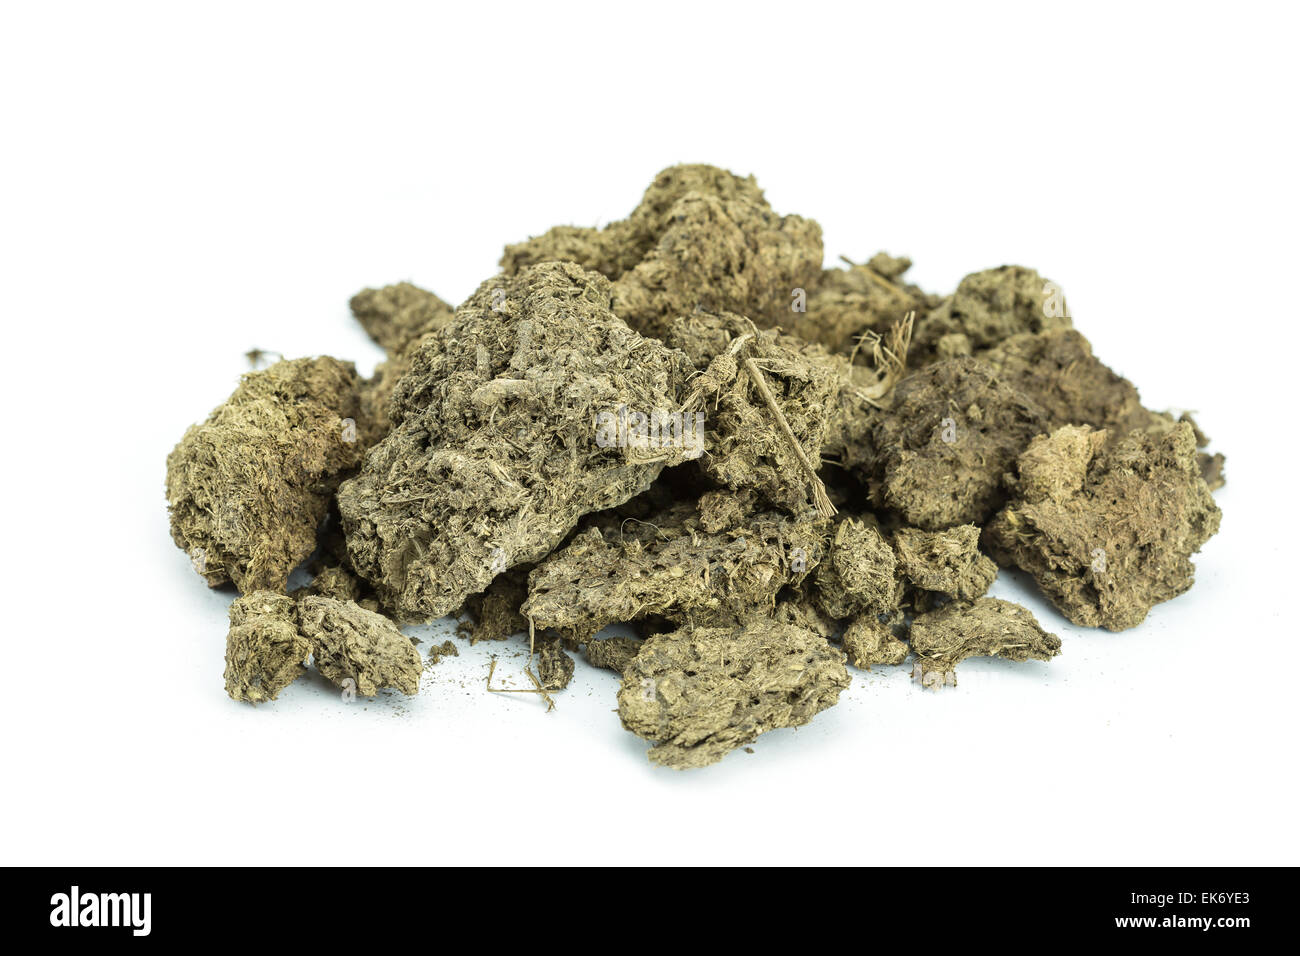 Pile of dry cow manure isolated on white background Stock Photo